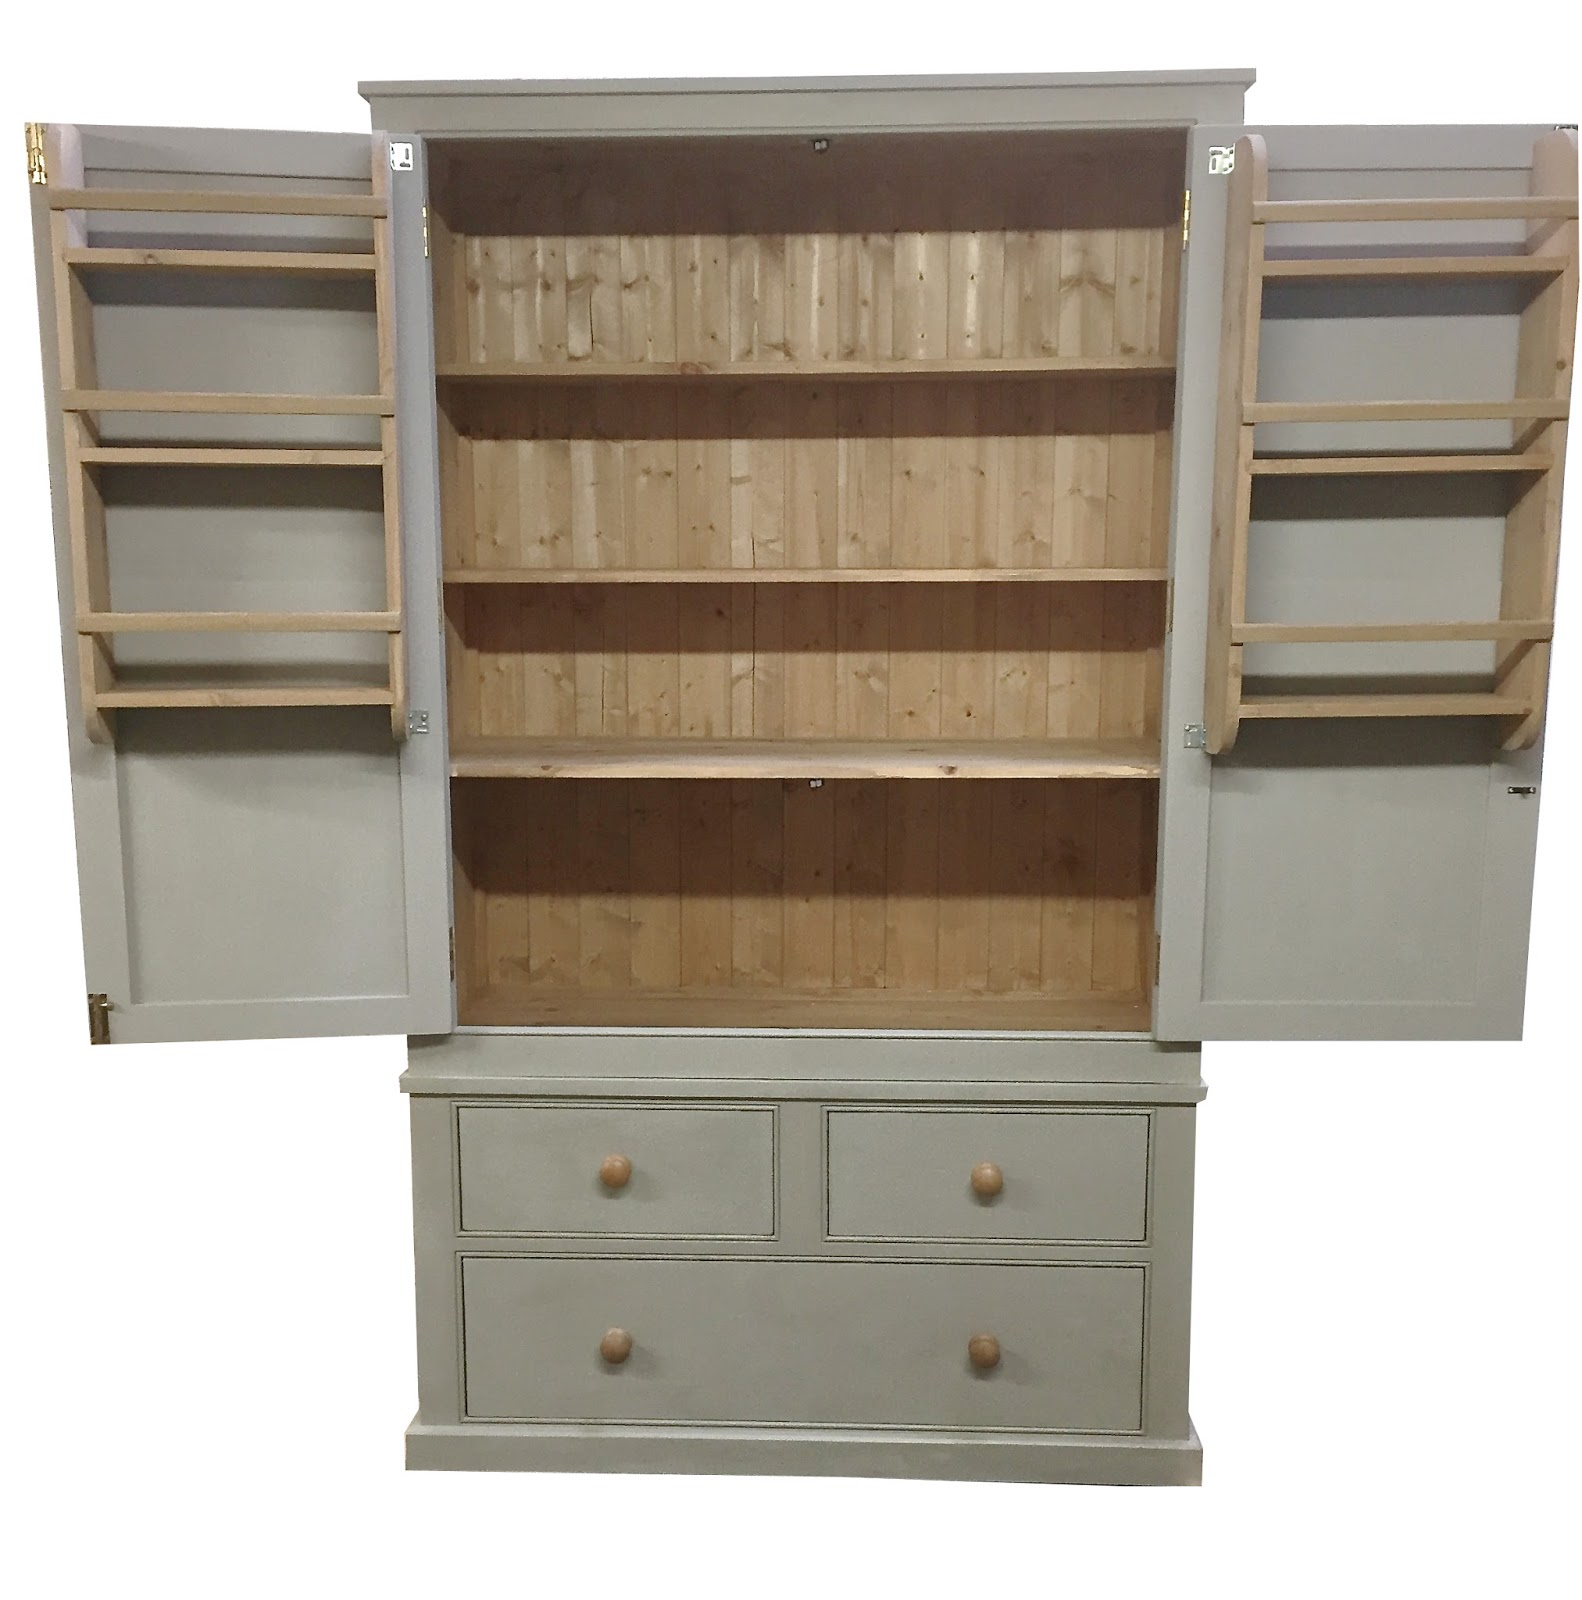 kitchen larder unit farmhouse country pantry storage ebay. Black Bedroom Furniture Sets. Home Design Ideas